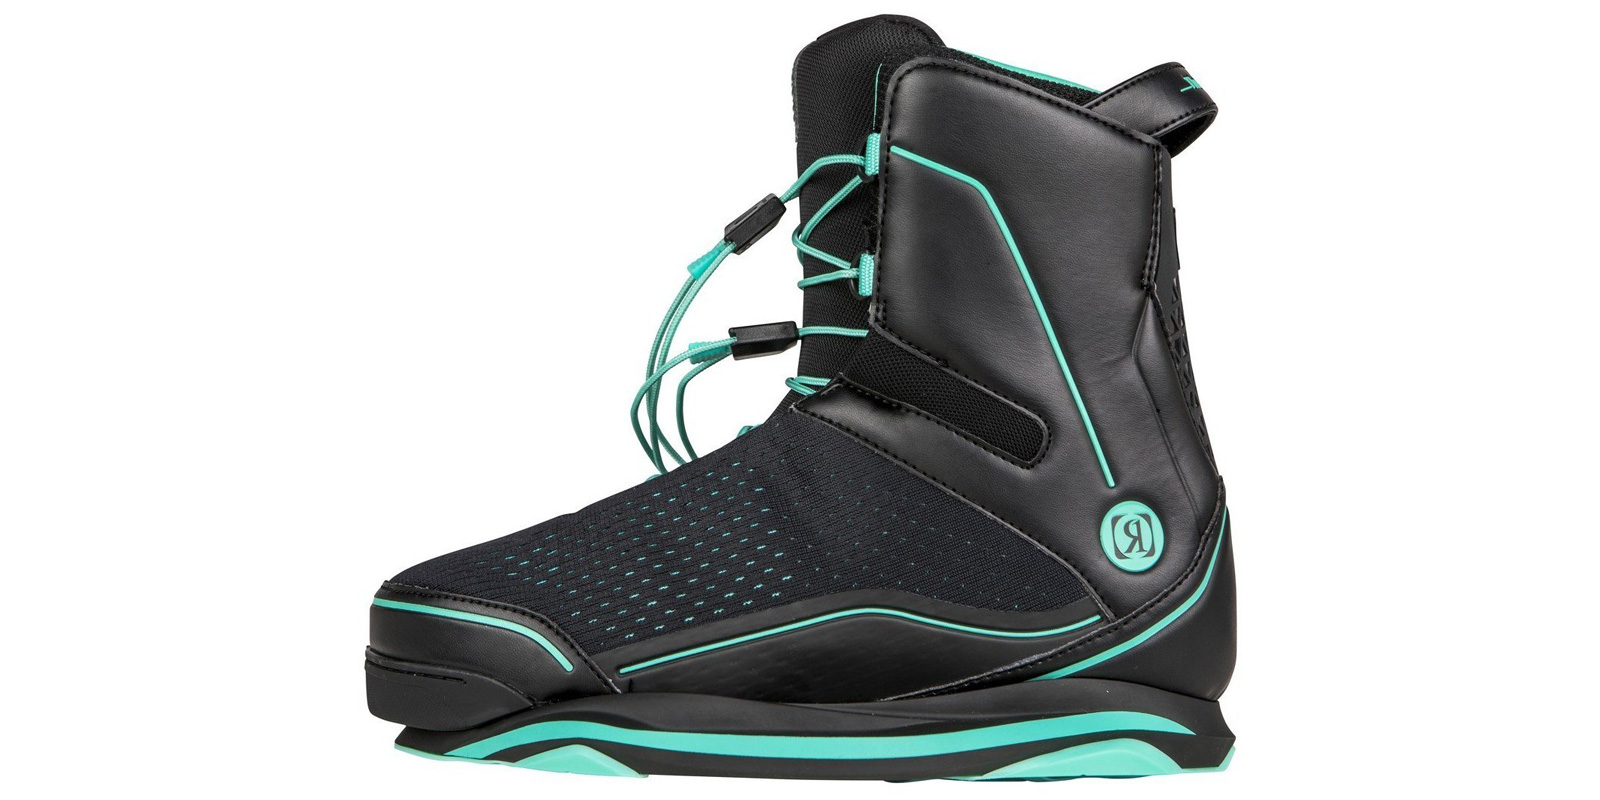 2019-ronix-signature-womens-wakeboard-boot